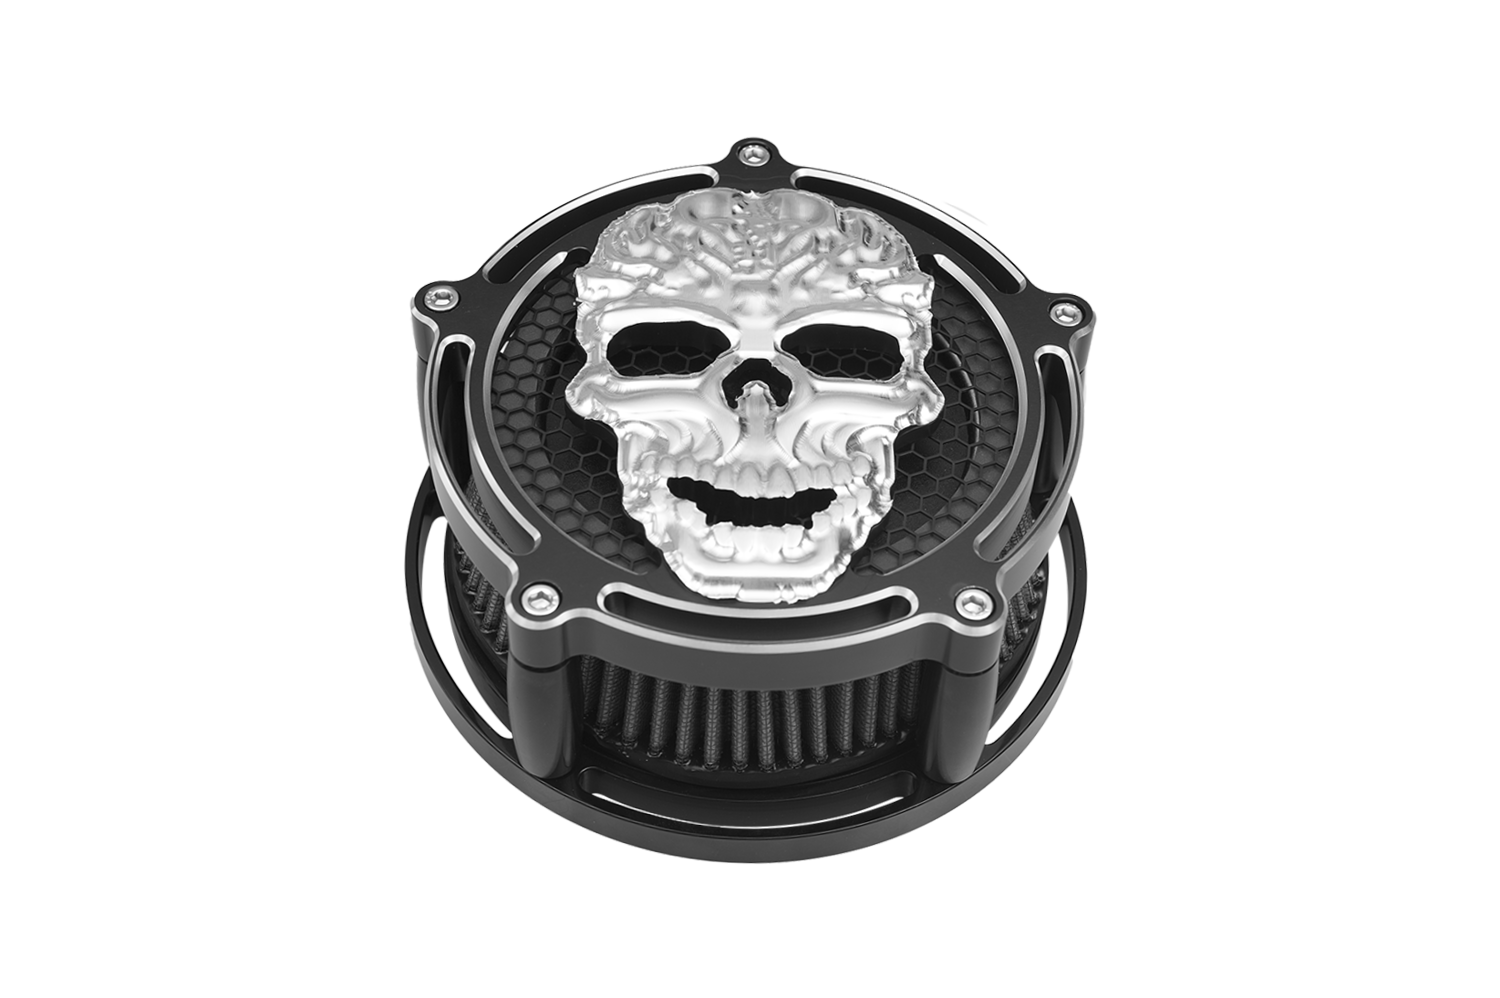 Air Cleaner for Harley Davidson: Afterlife Edition